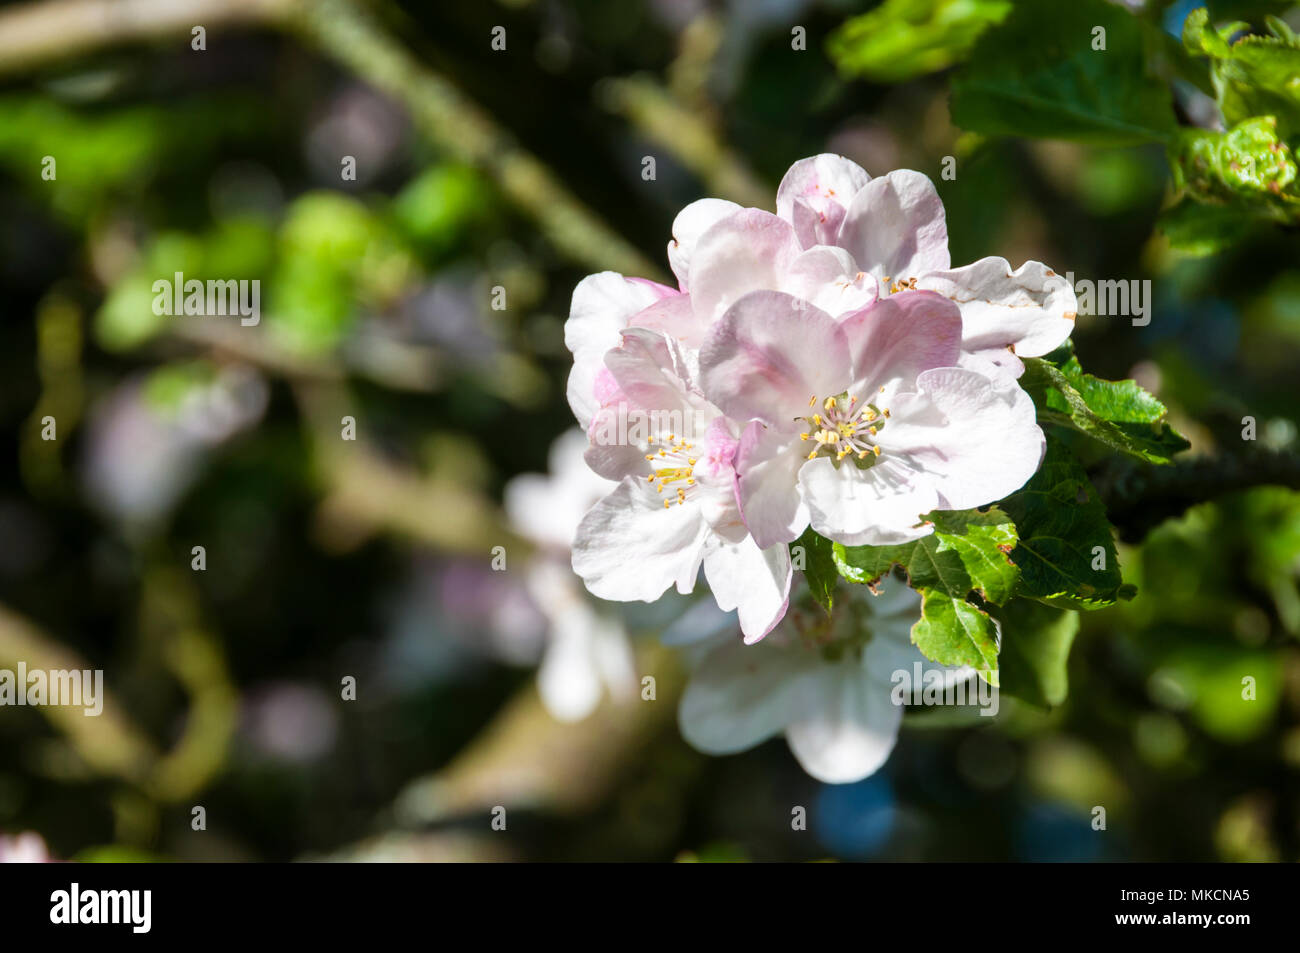 White apple blossom on branches of a Bramley apple tree, Malus domestica - Stock Image